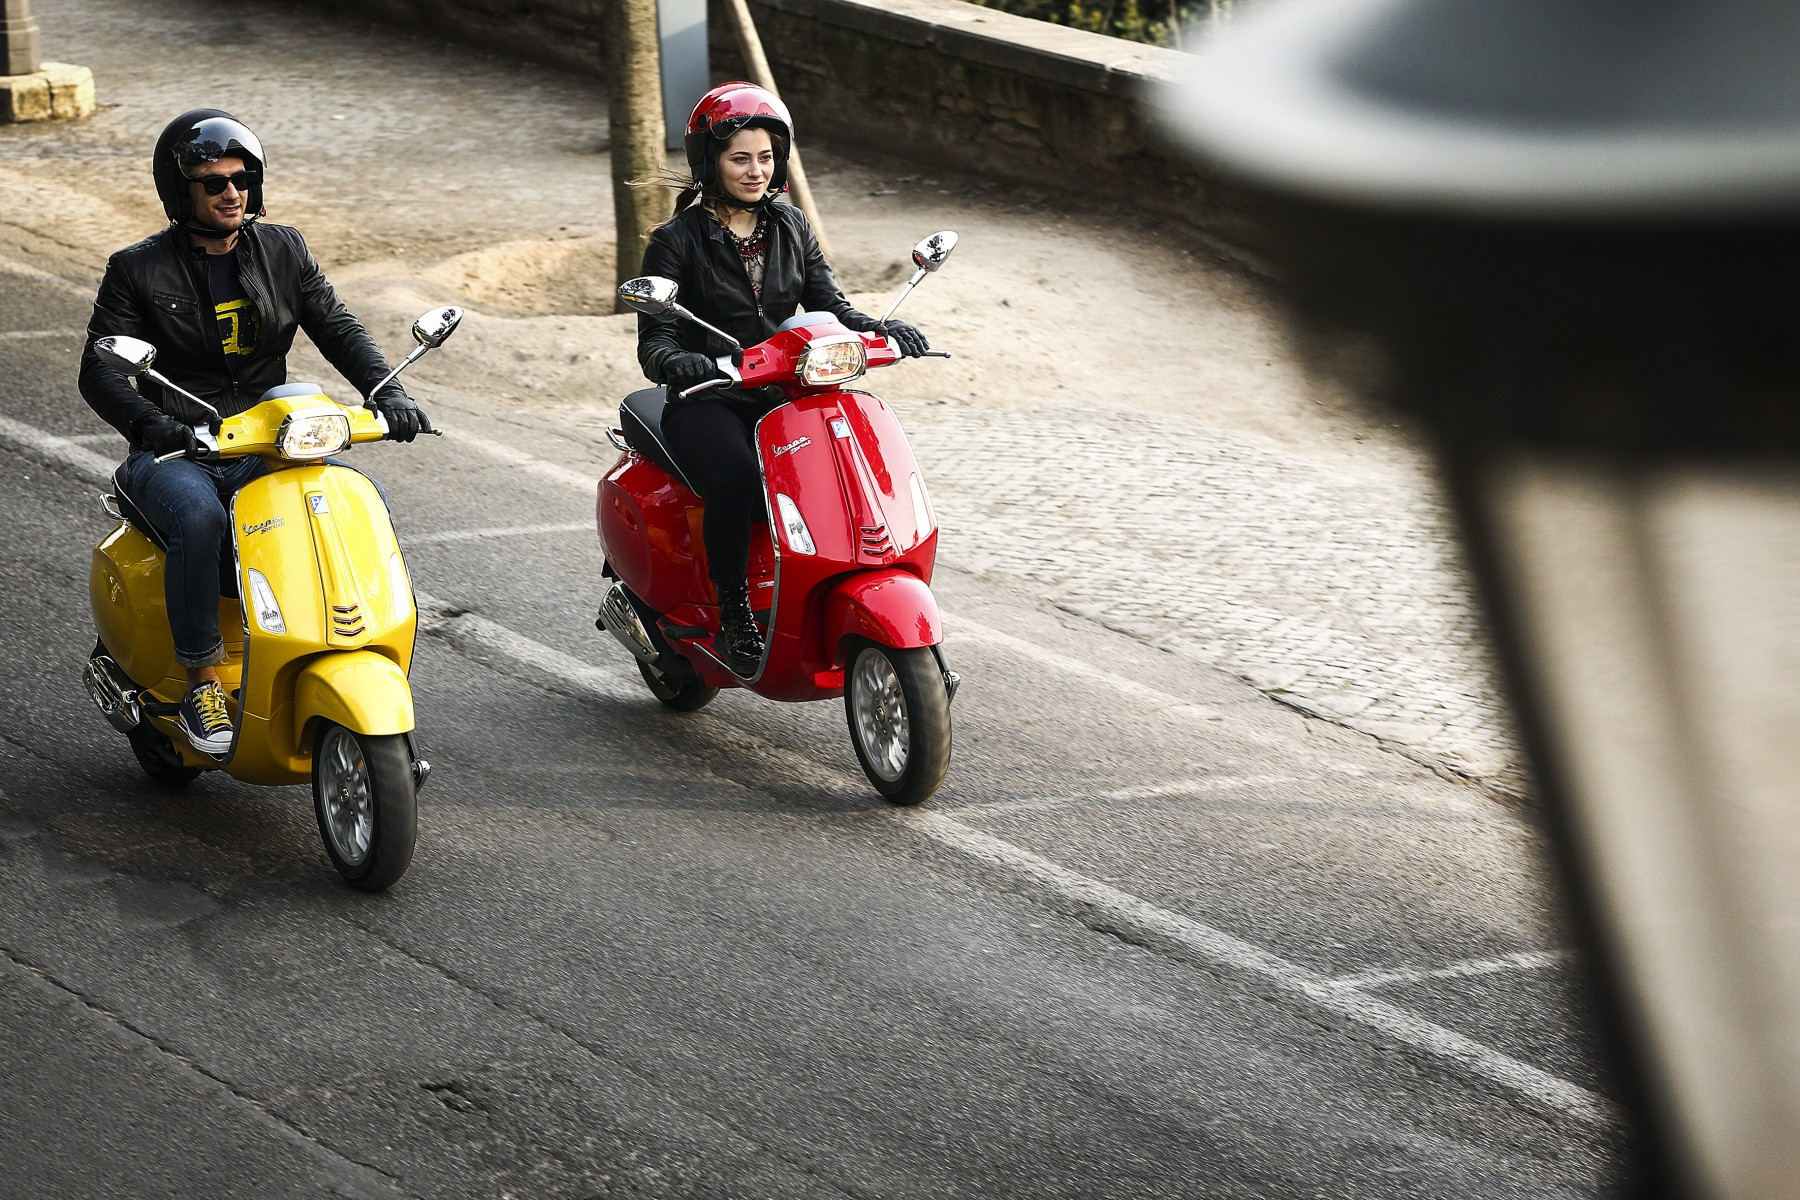 092 Vespa yellow and redSprint